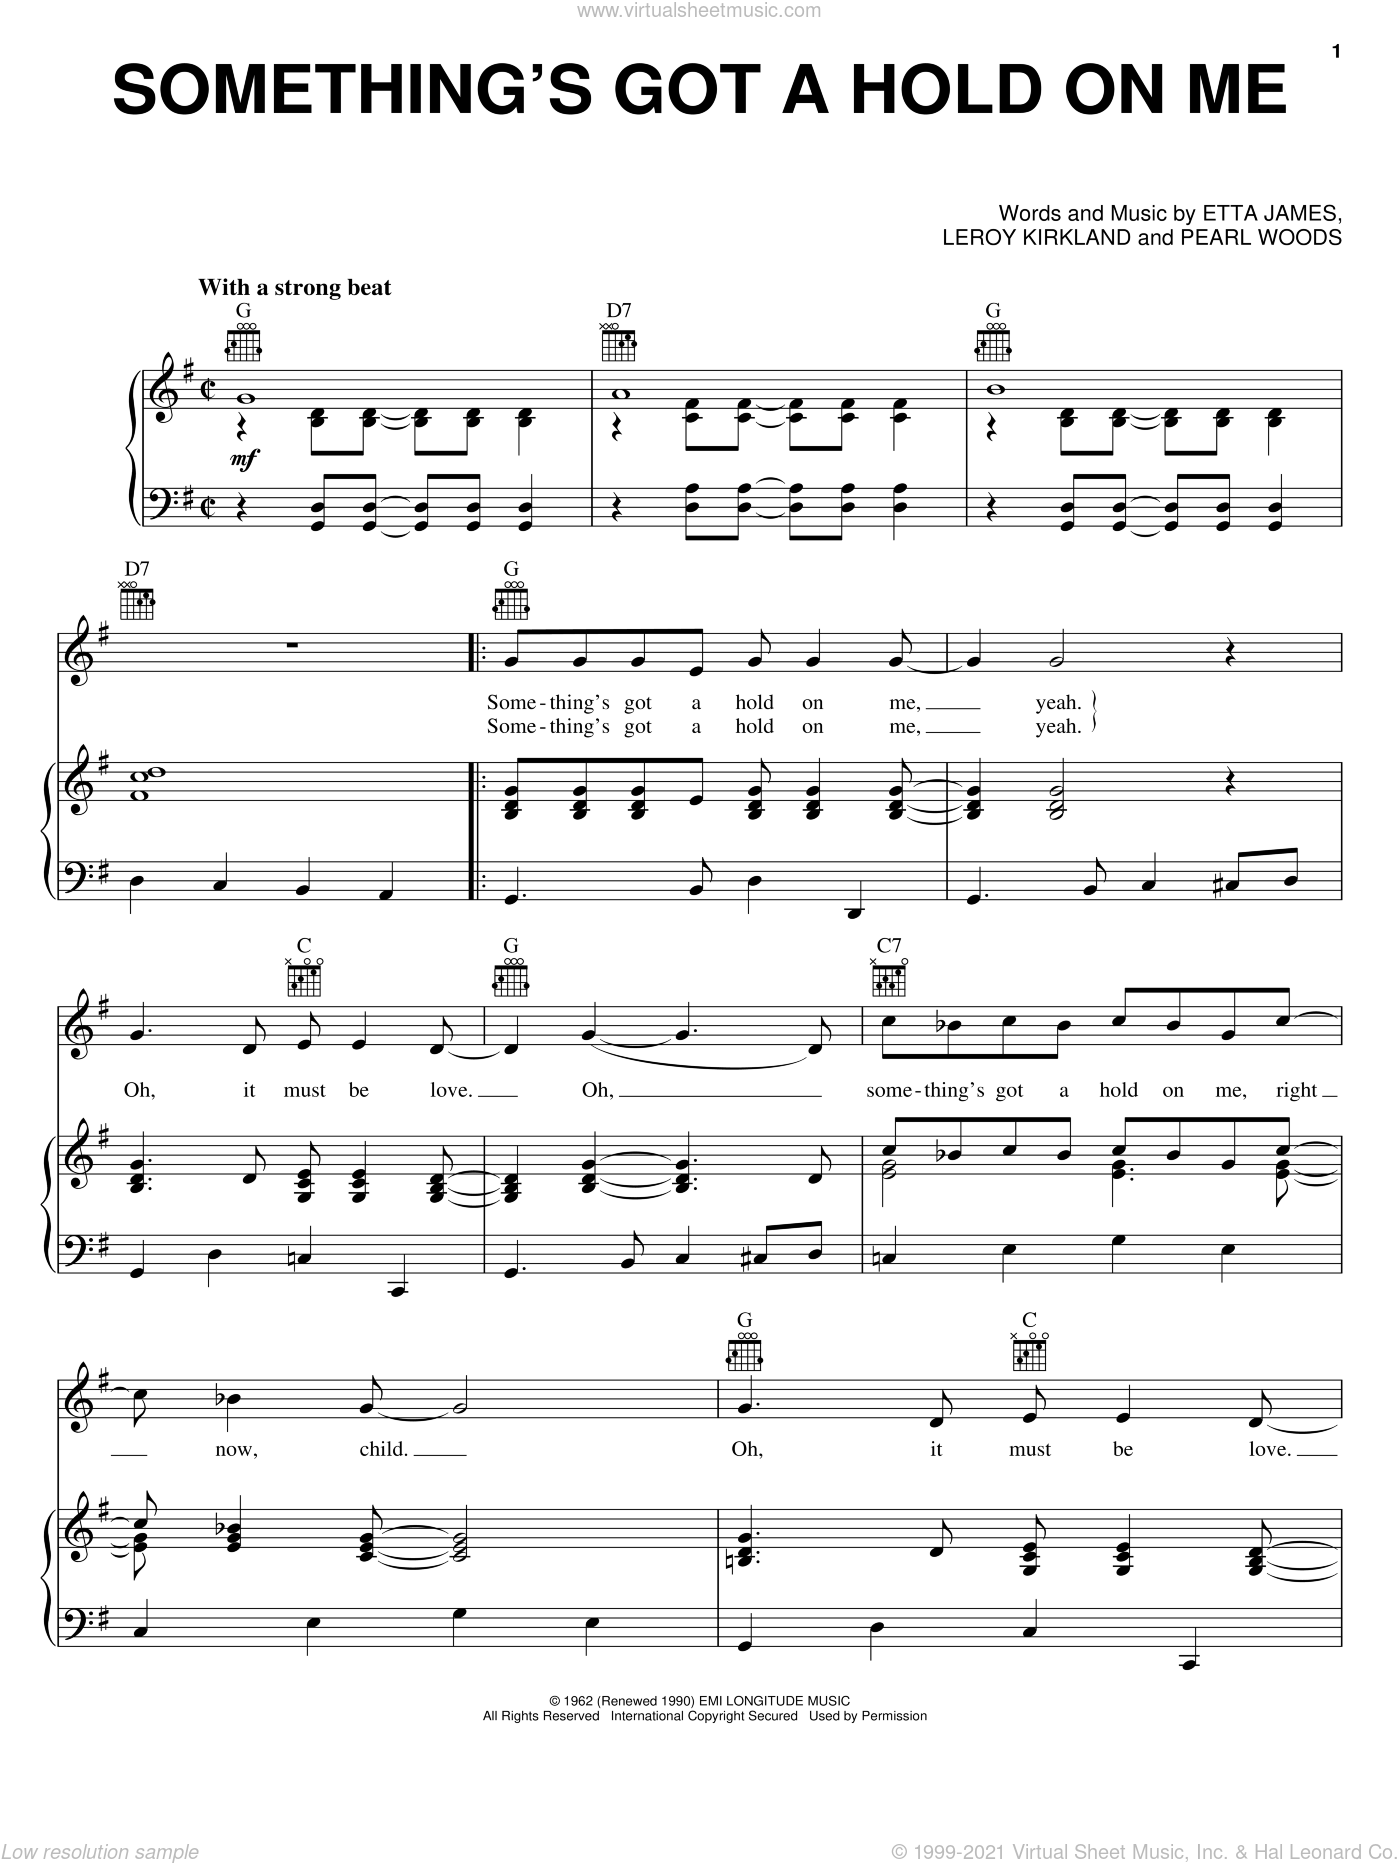 Something's Got A Hold On Me sheet music for voice, piano or guitar by Pearl Woods